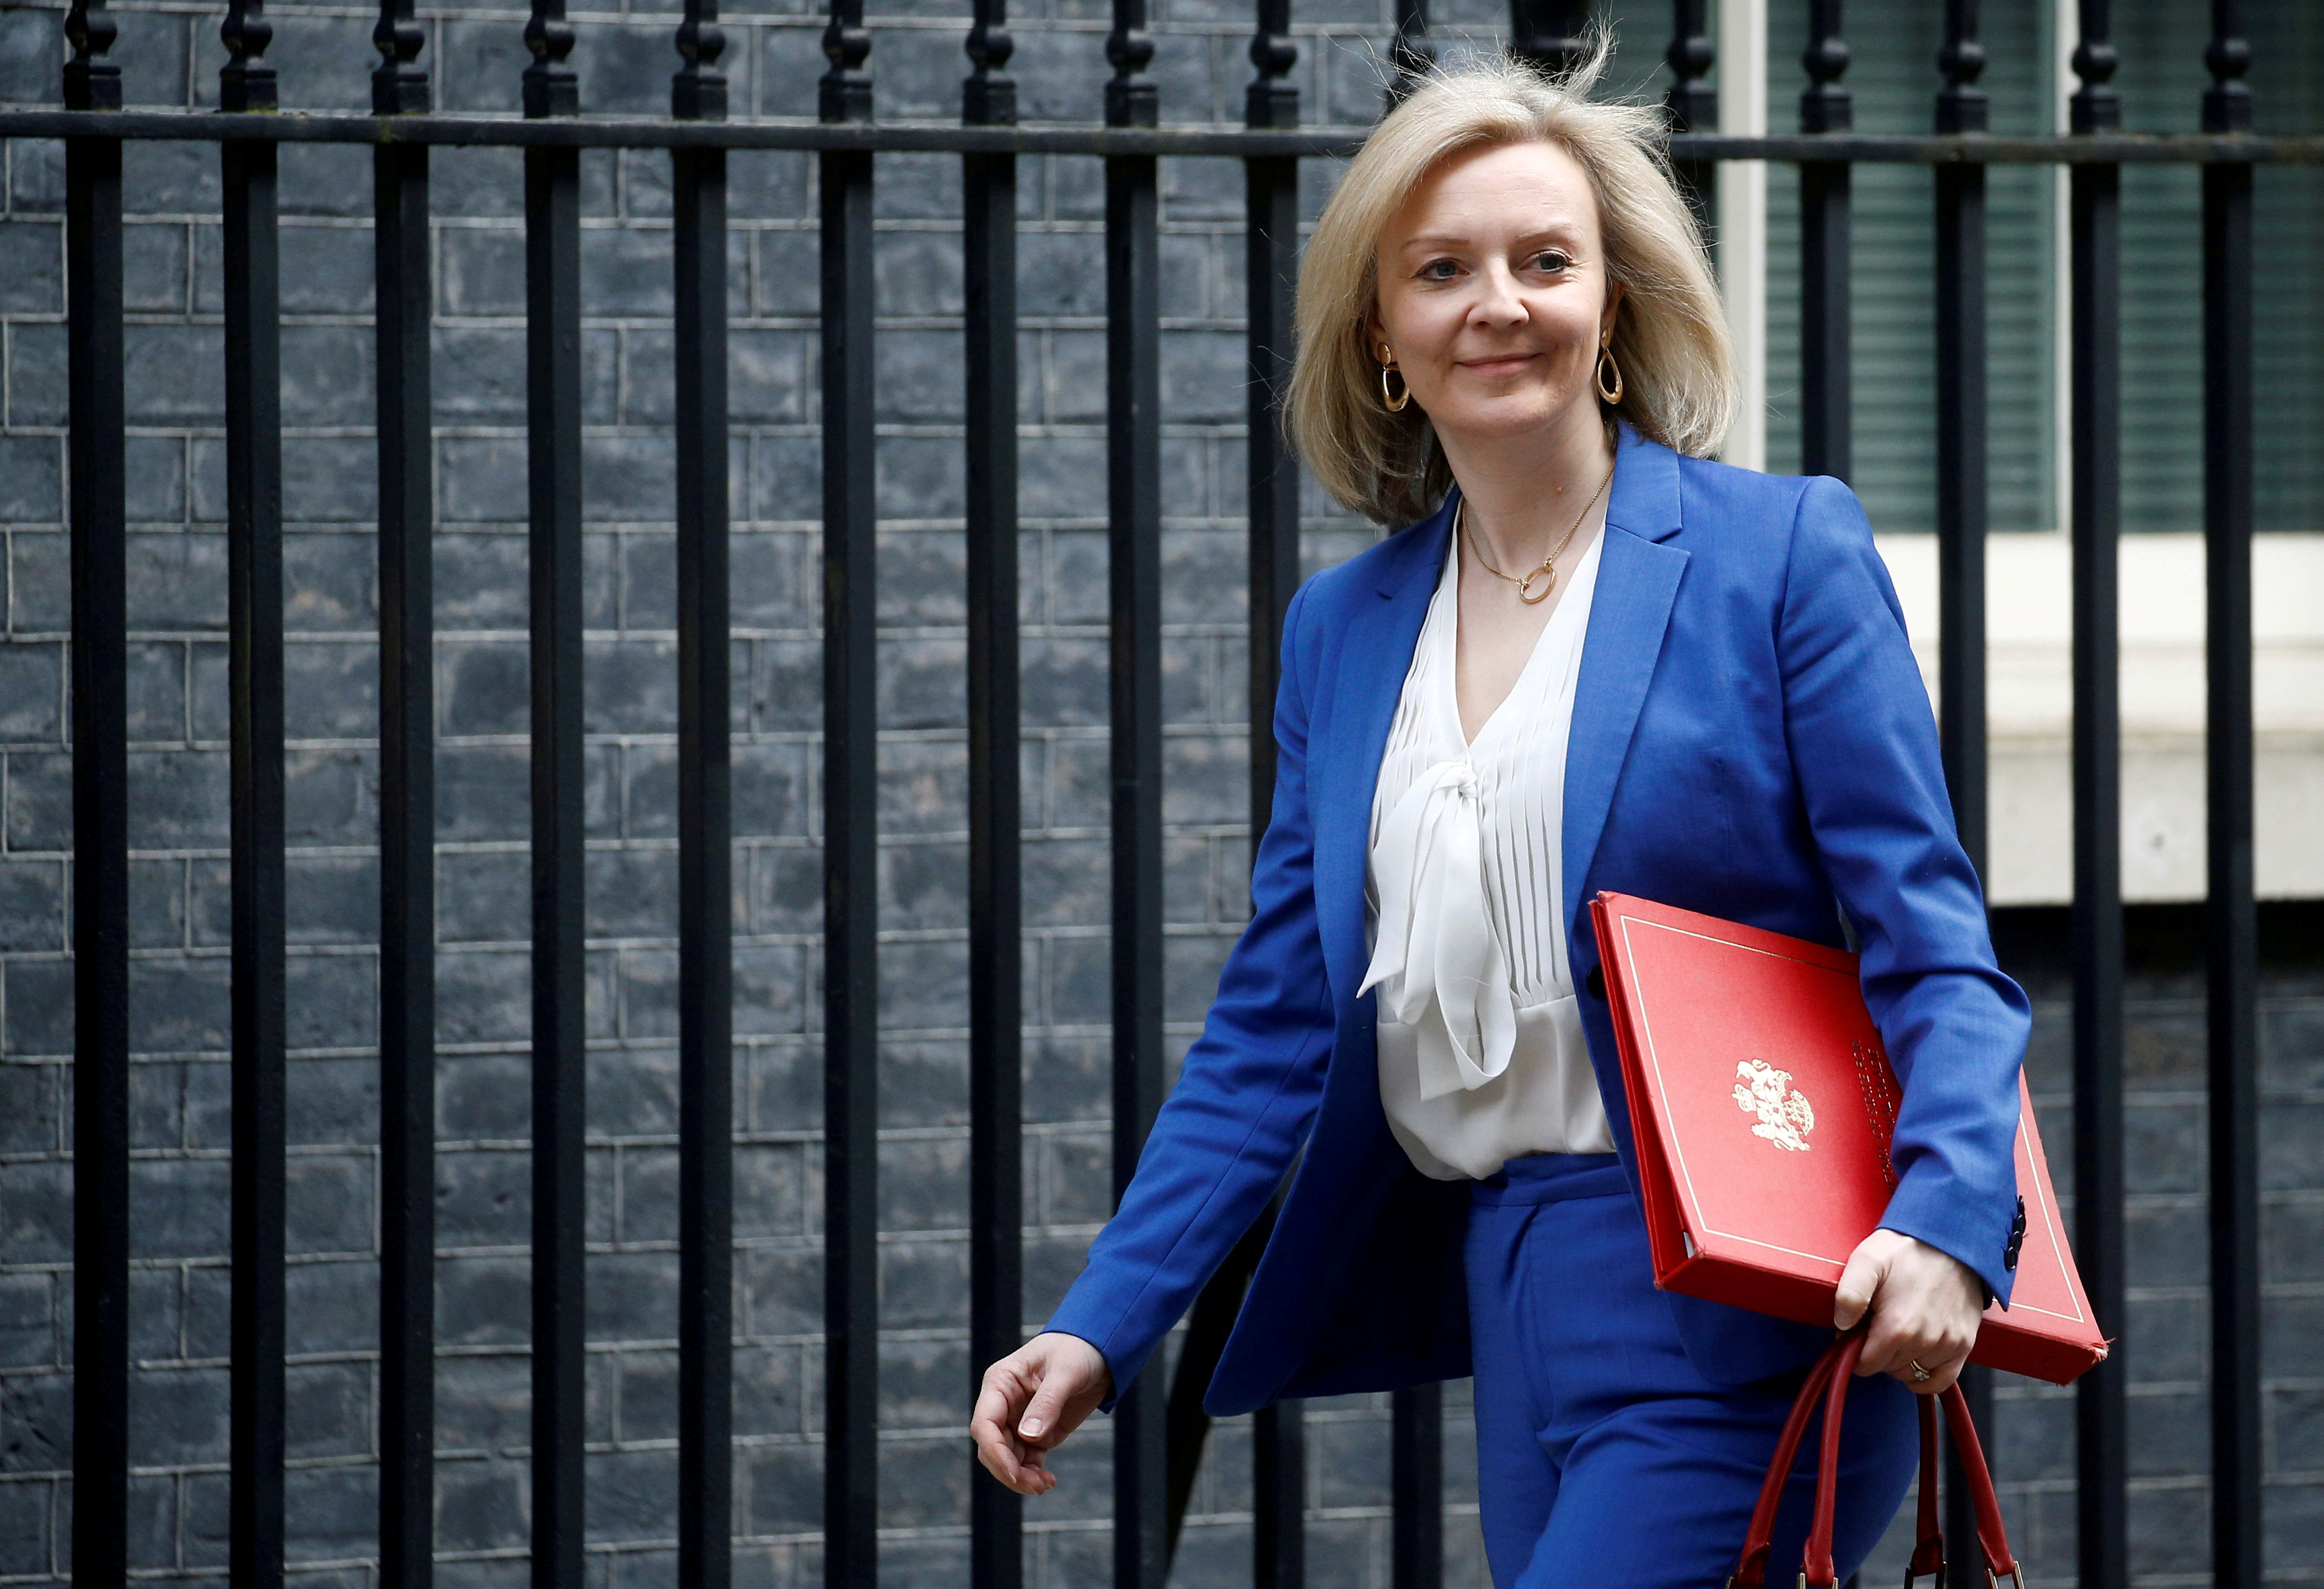 Britain's Secretary of State of International Trade and Minister for Women and Equalities Liz Truss is seen outside Downing Street, in London, Britain March 17, 2020. REUTERS/Henry Nicholls/File Photo